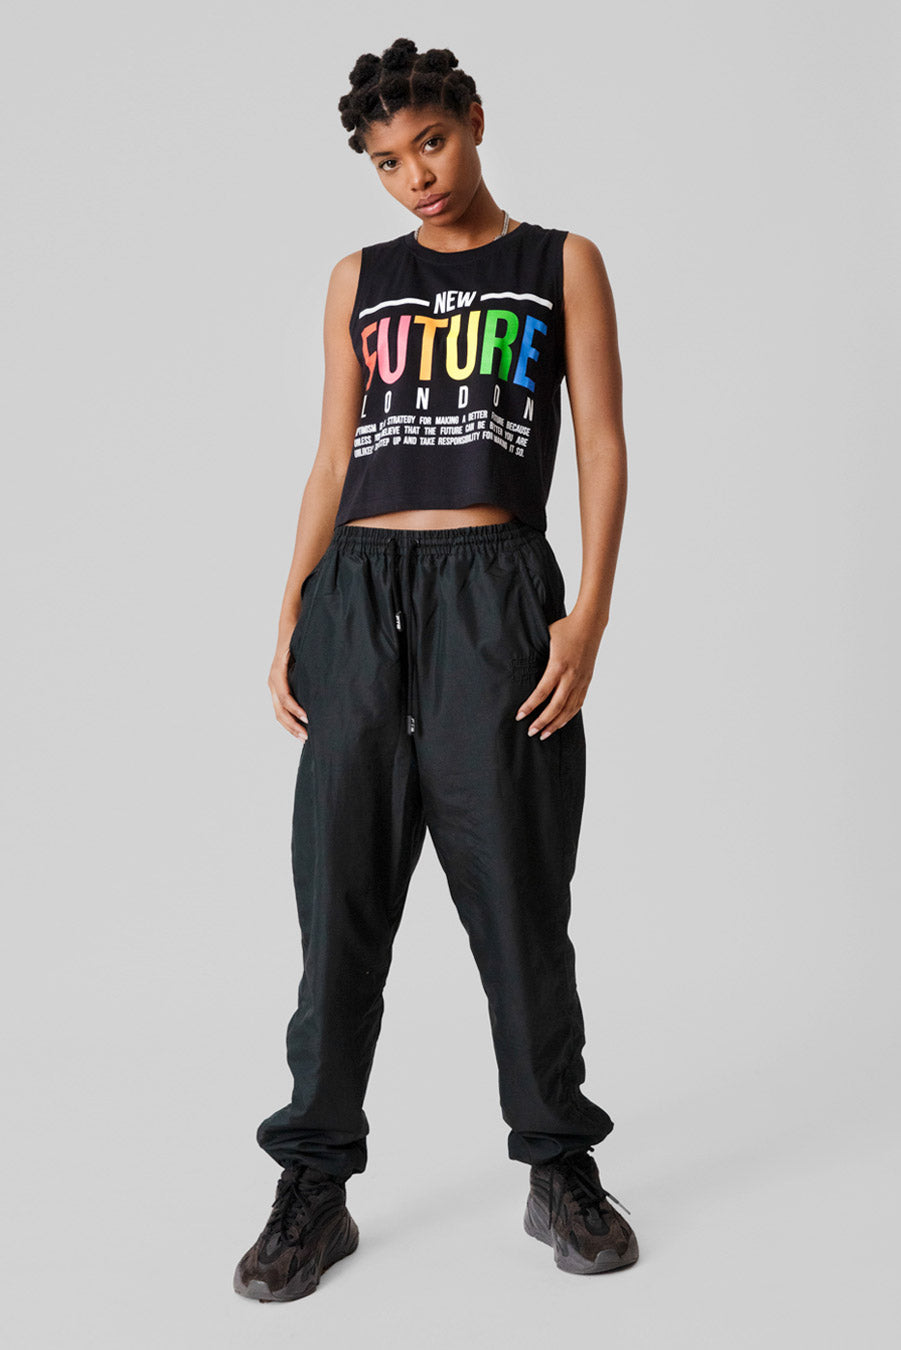 BELIEVE Crop Top (Black)